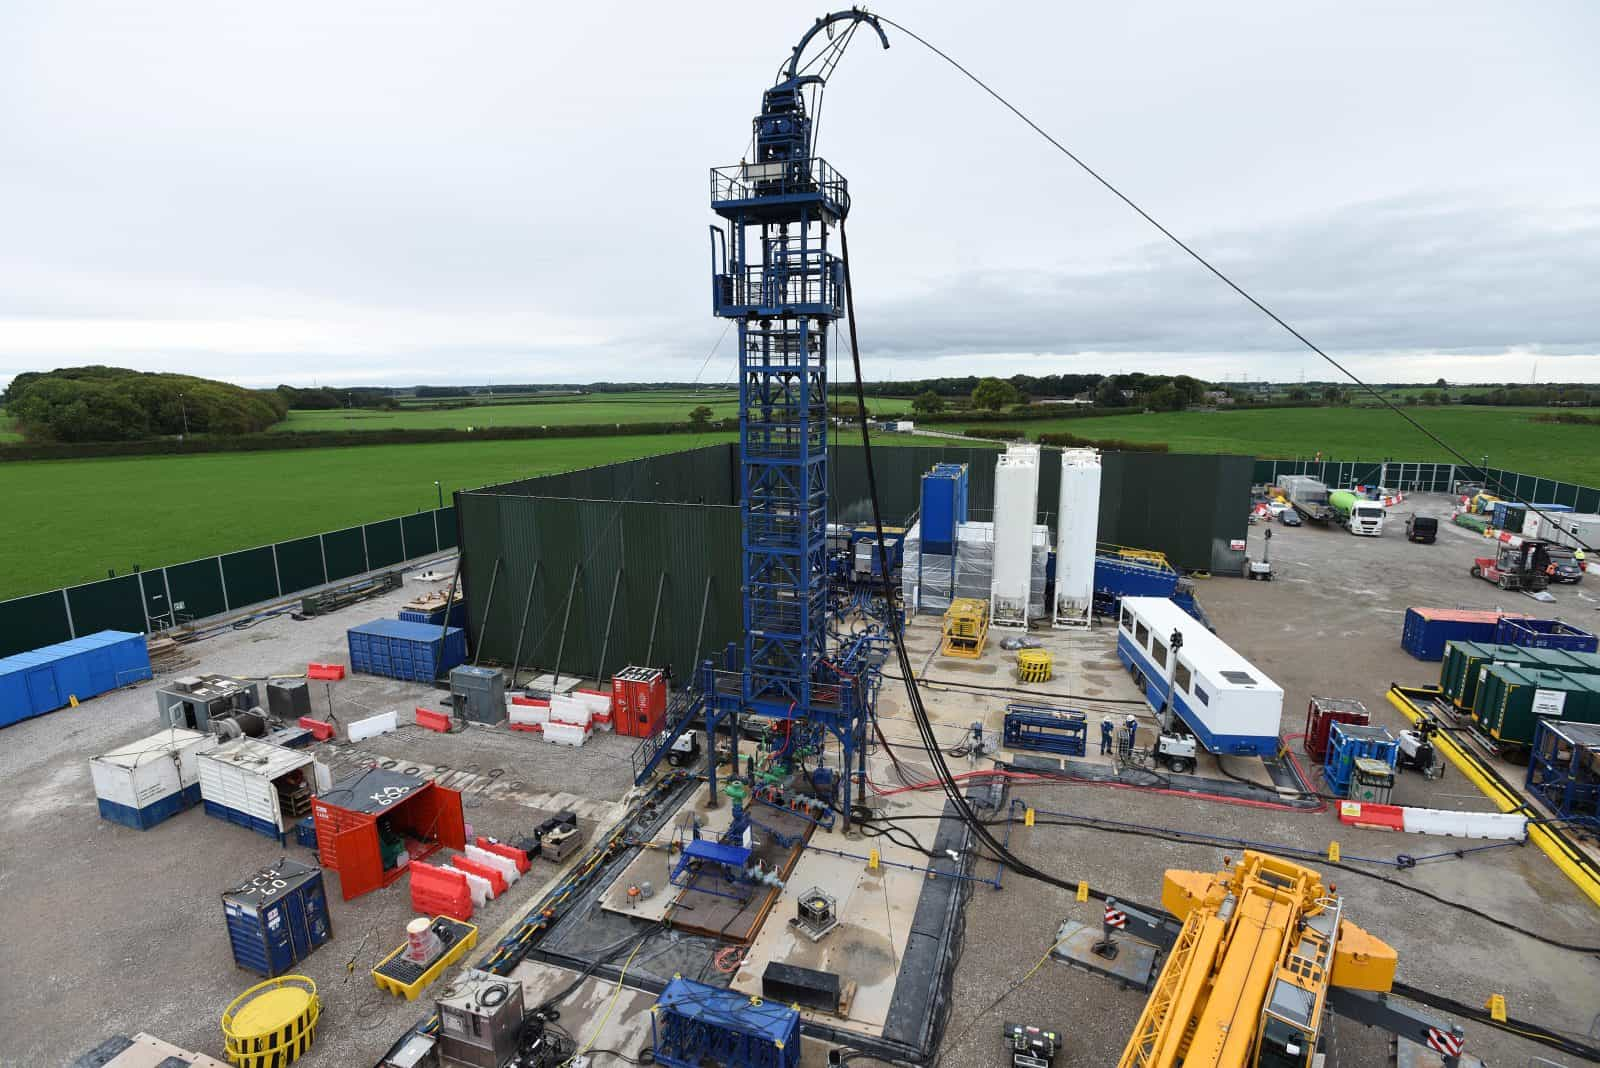 Fracking halts again at Cuadrilla site after biggest tremor yet